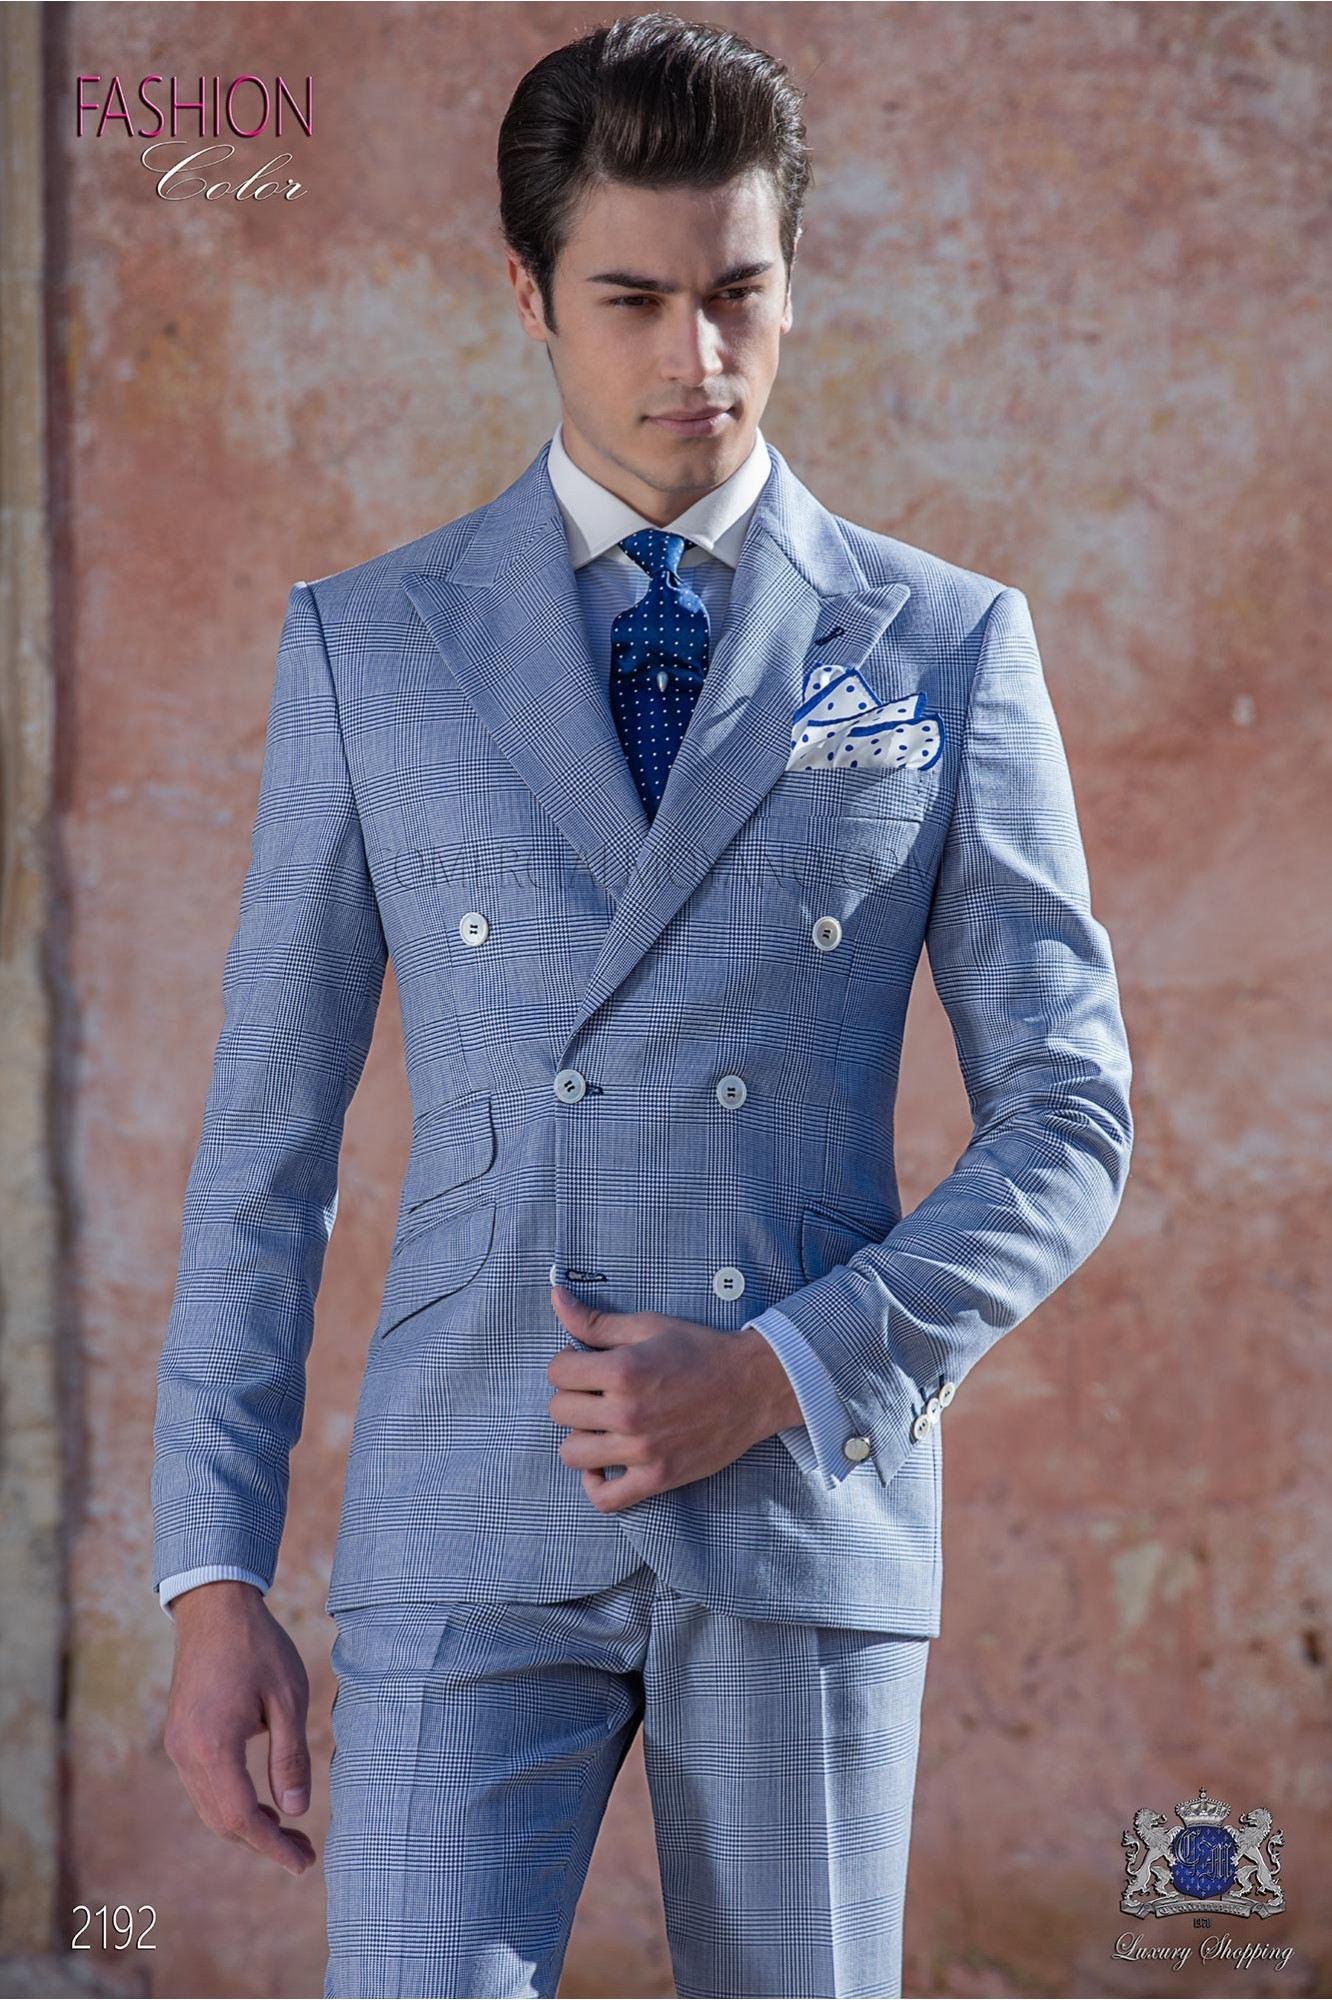 Fashion Colour men wedding suits, collection Ottavio Nuccio Gala ...